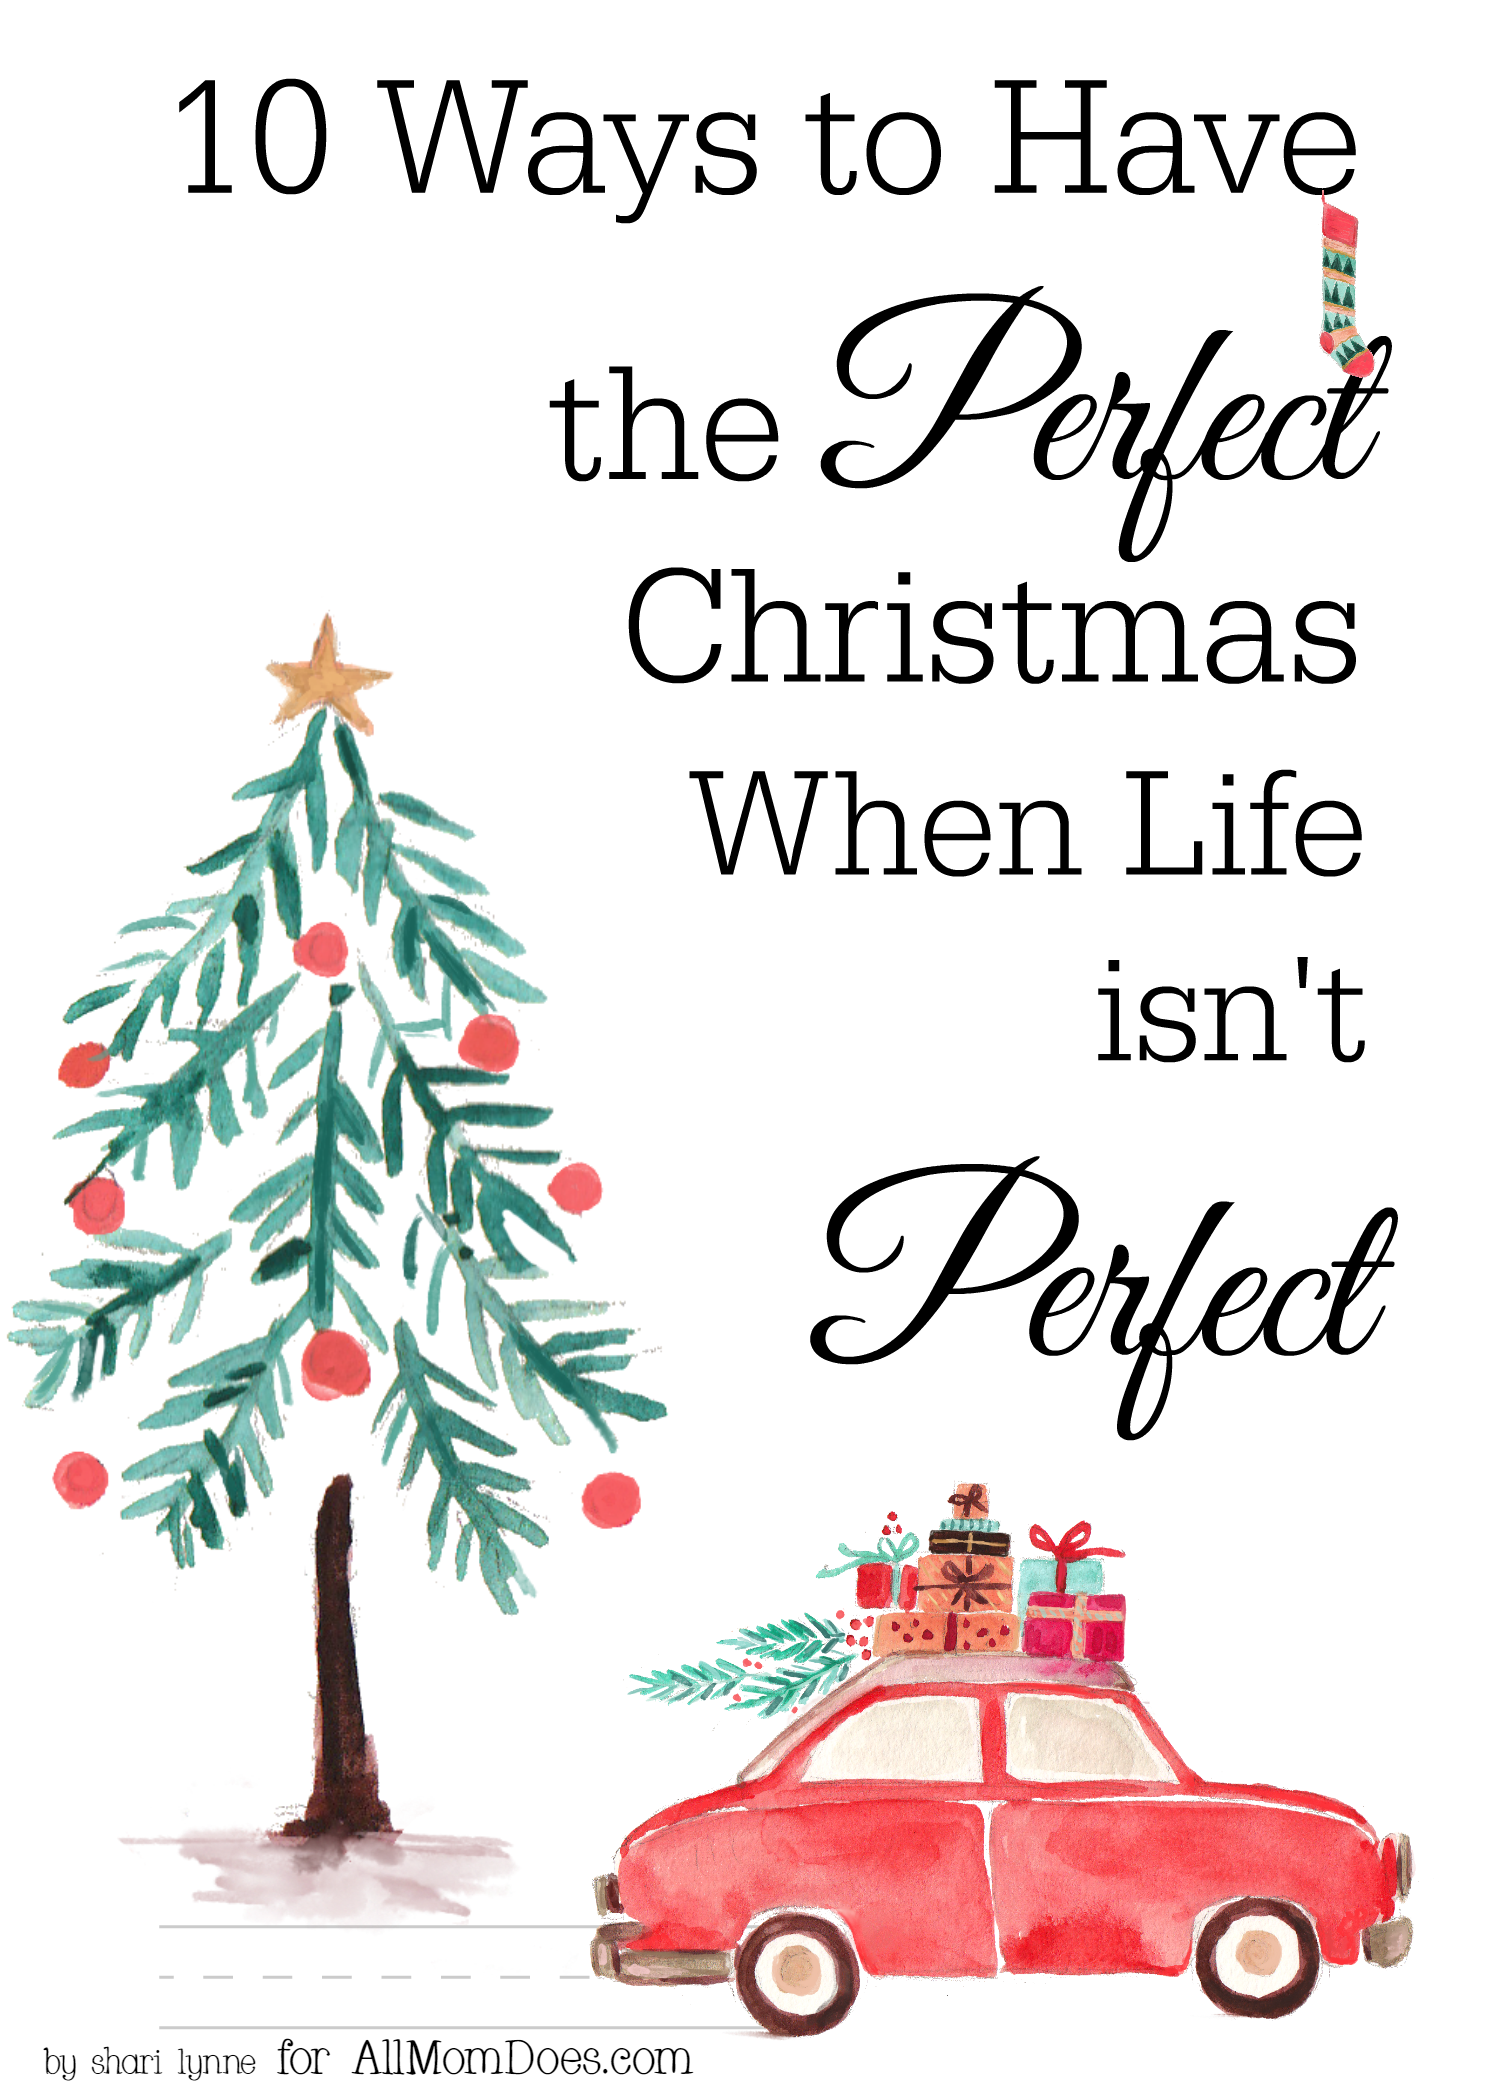 Have A Perfect Christmas When Life Isn't Perfect